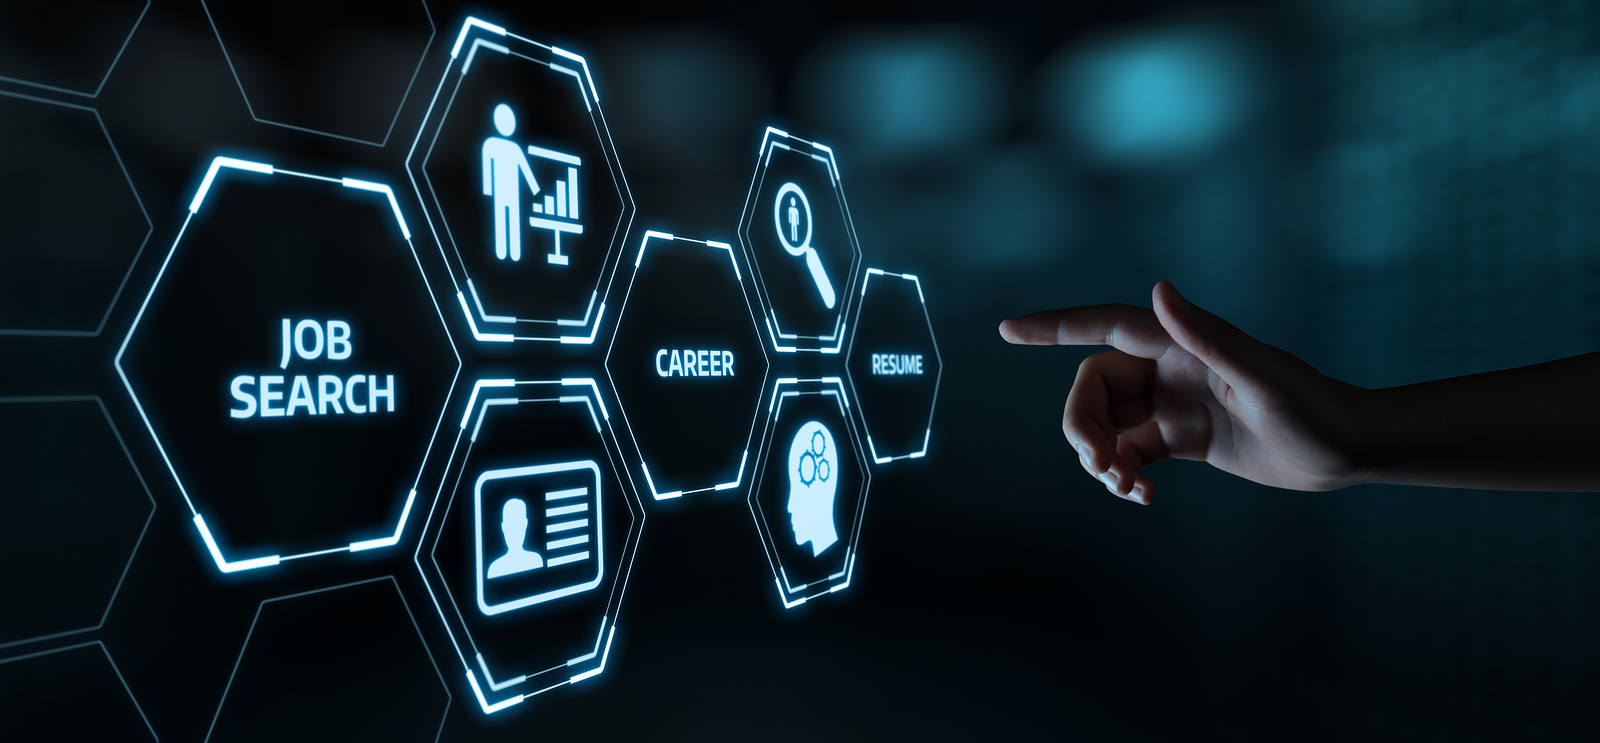 Technology Management Image: How Innovation In HR Technology Is Changing The